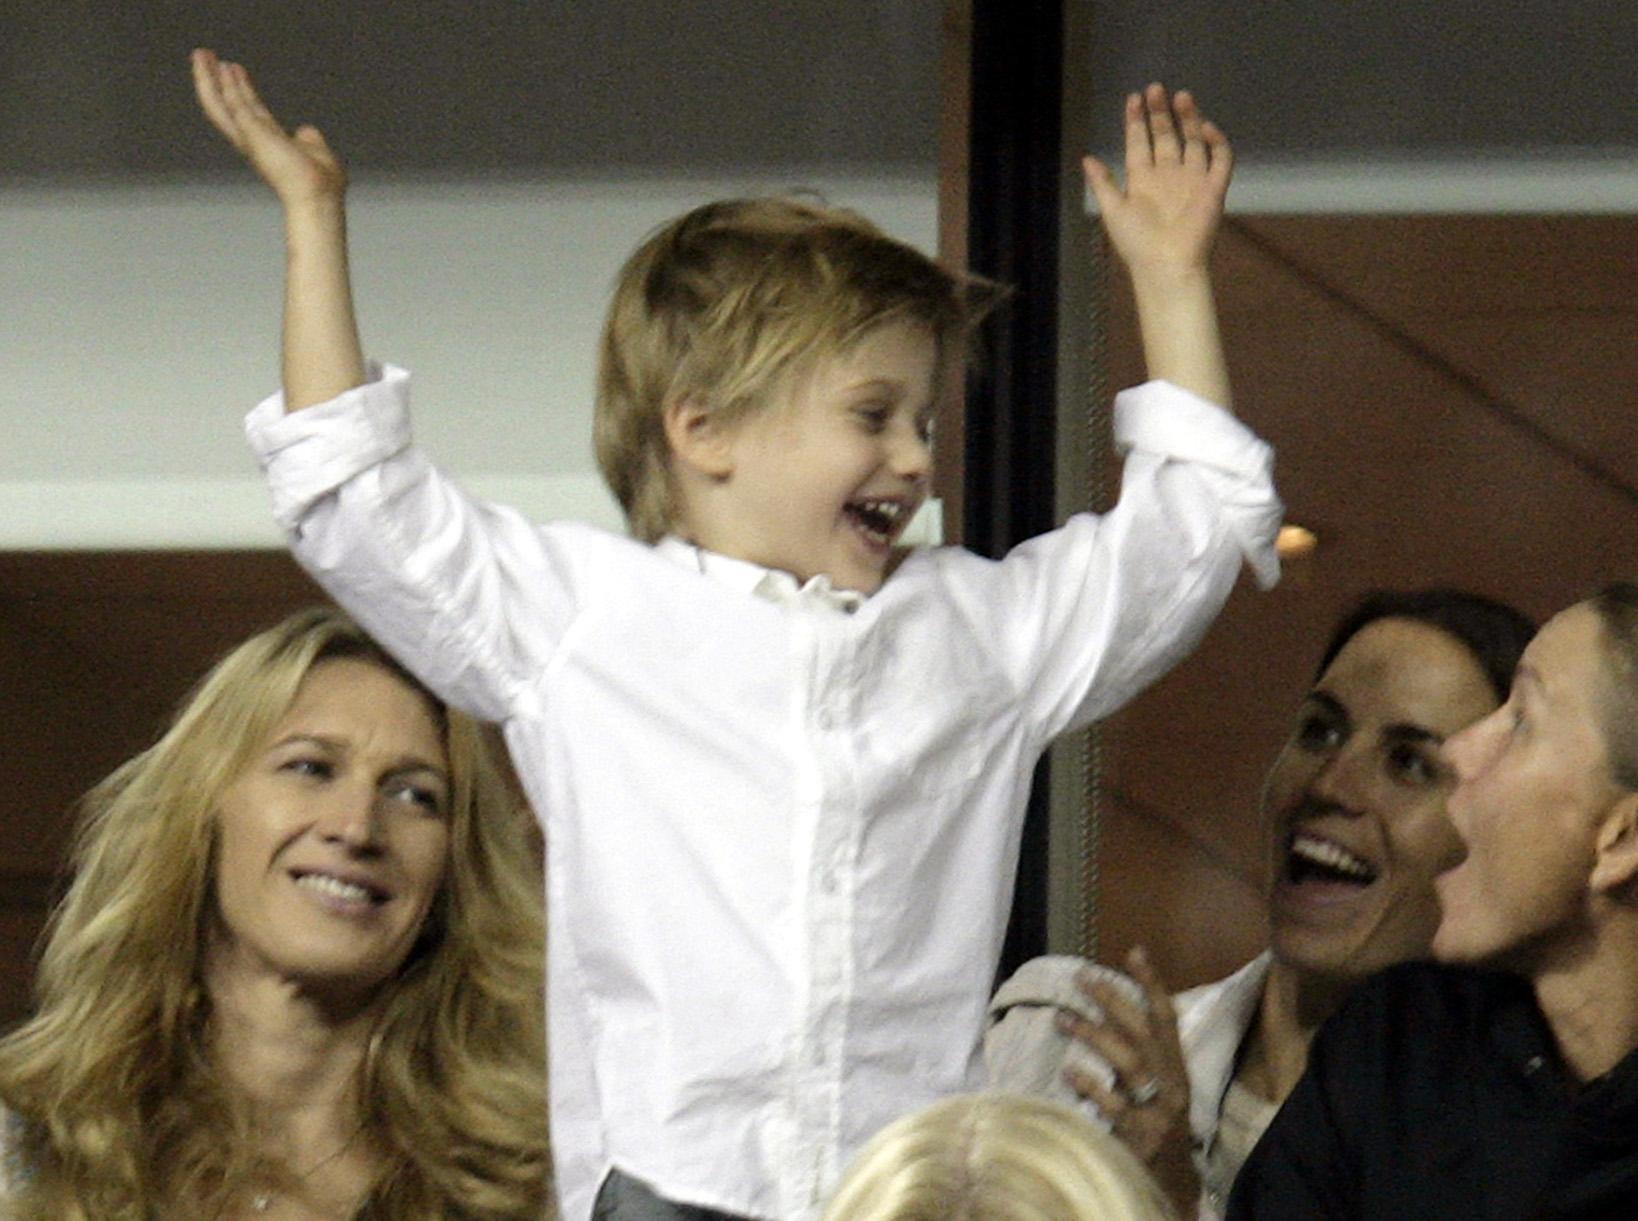 Andre Agassi's son Jaden Gil celebratIING with his mother, Steffi Graf (left), after USA's Andre Agassi beat Marcos Baghdatis in their second round match at the US Open in Flushing Meadow, New York IN 2006. (PA)